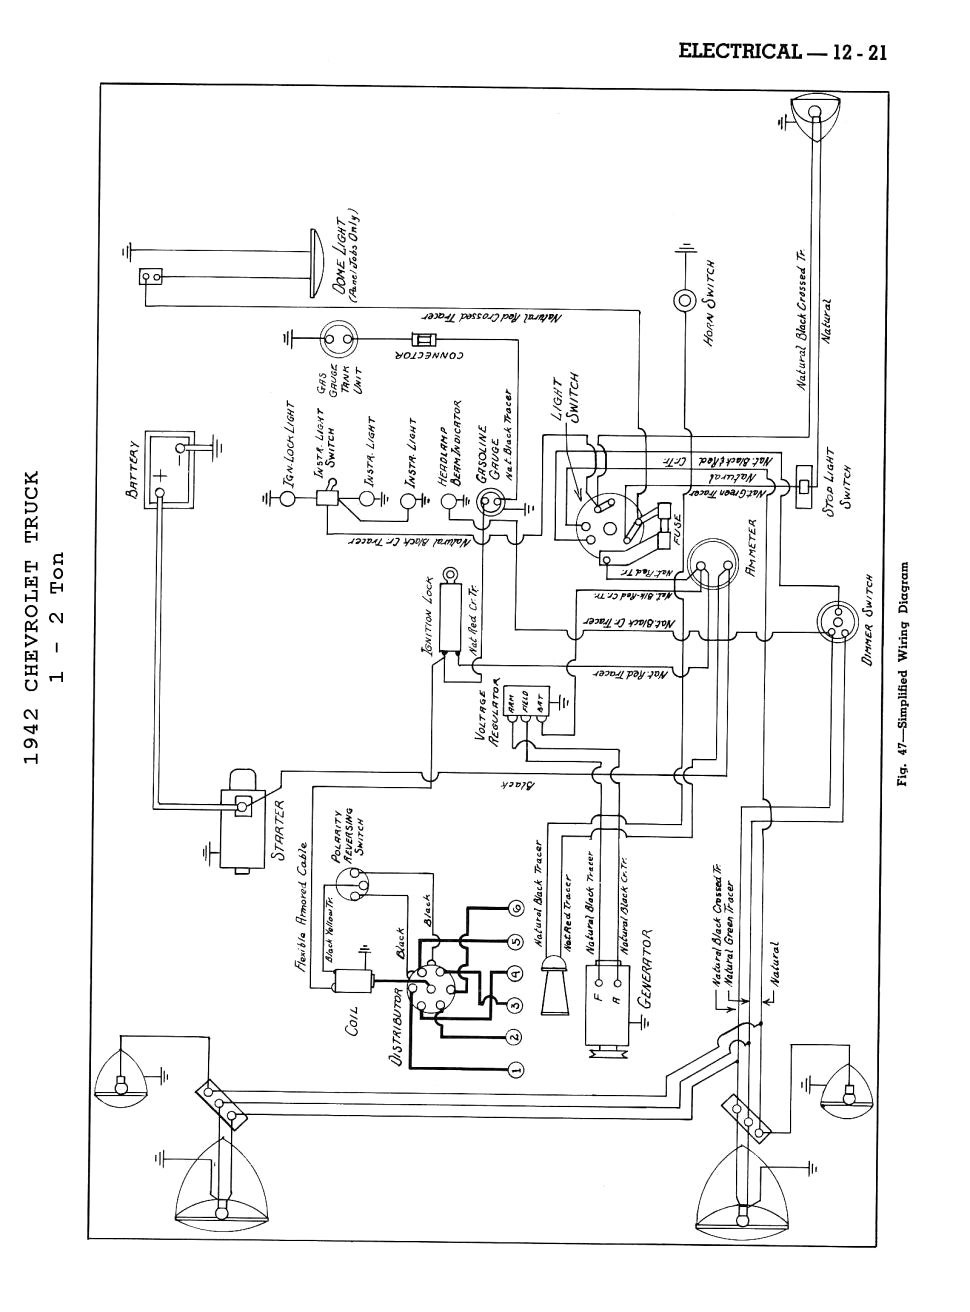 micro thermostat wiring diagram free picture